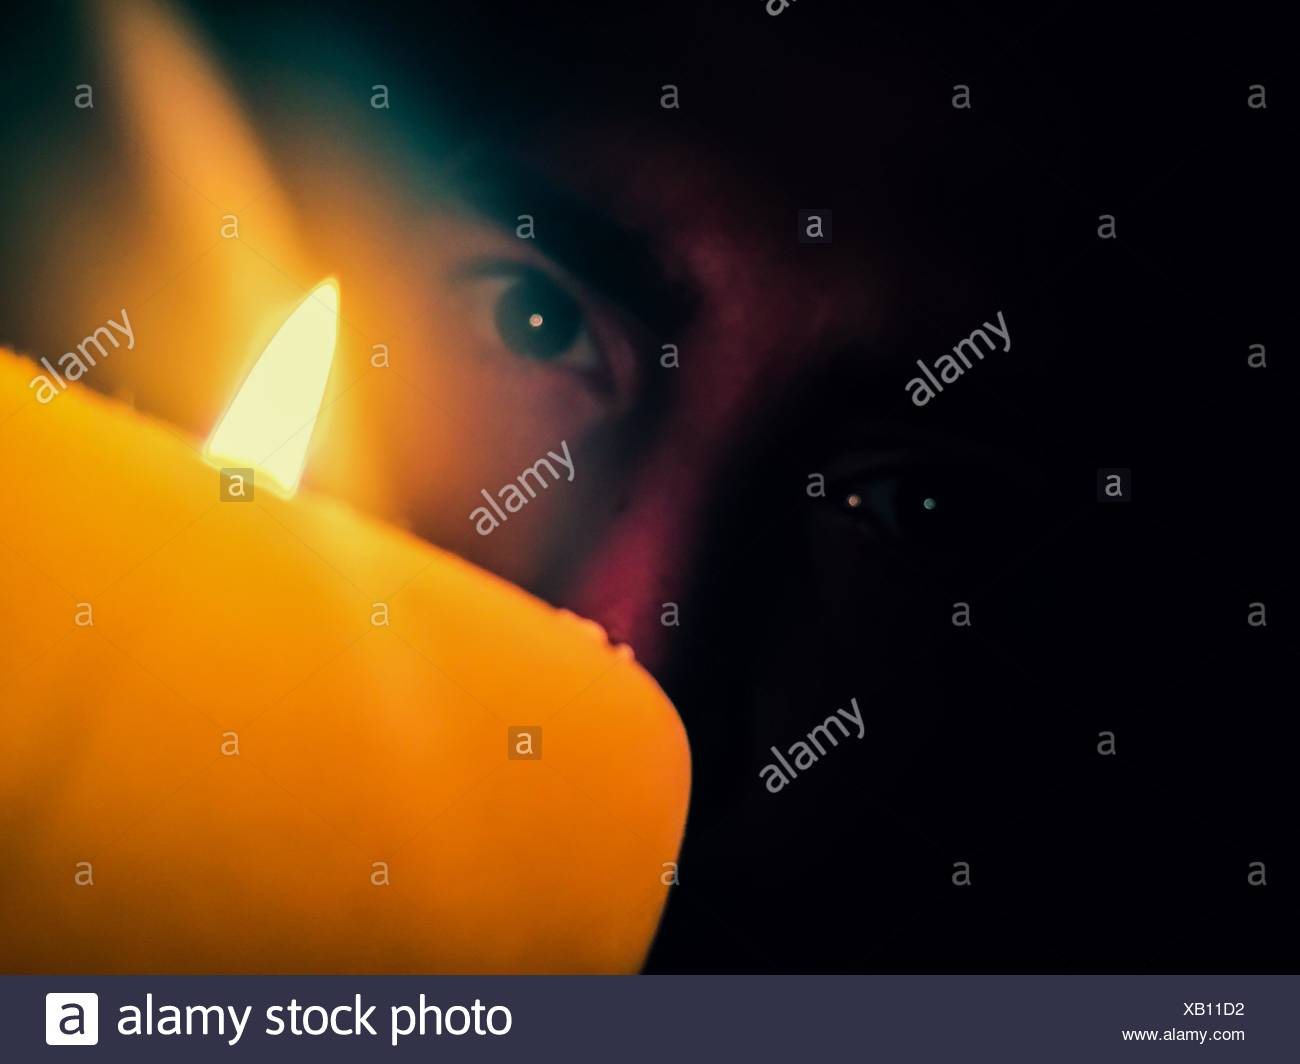 Portrait Of Man In Front Of Lit Candle In Darkroom - Stock Image